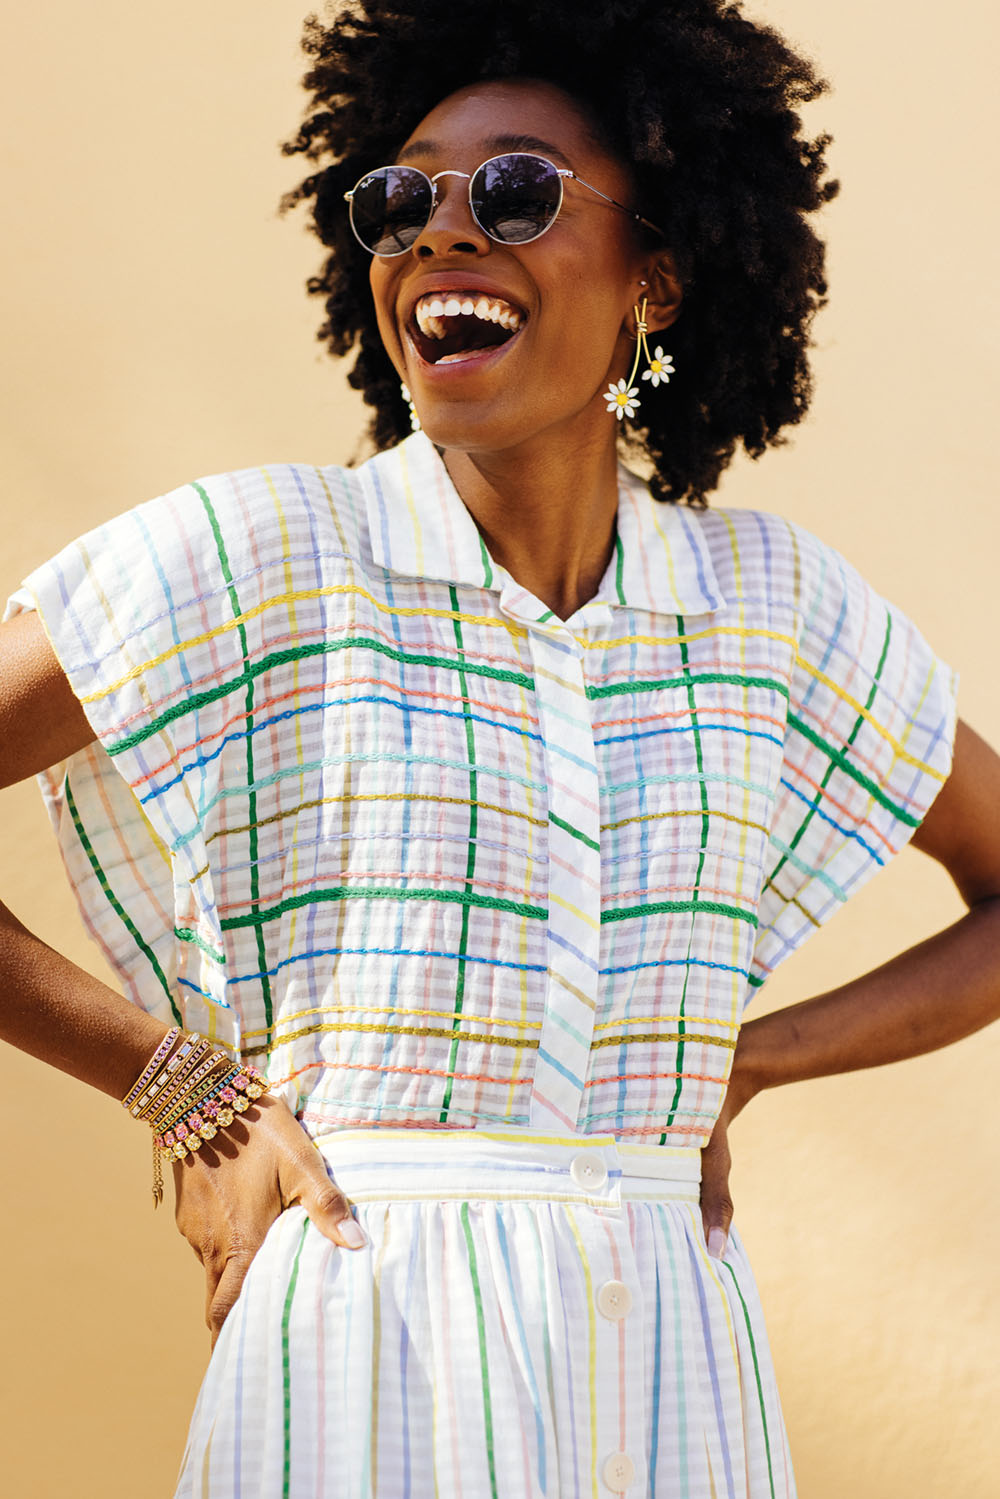 floral earrings worn by a model wearing a cotton summer dress in a green, pink, blue, and, yellow large-scale plaid on a white background